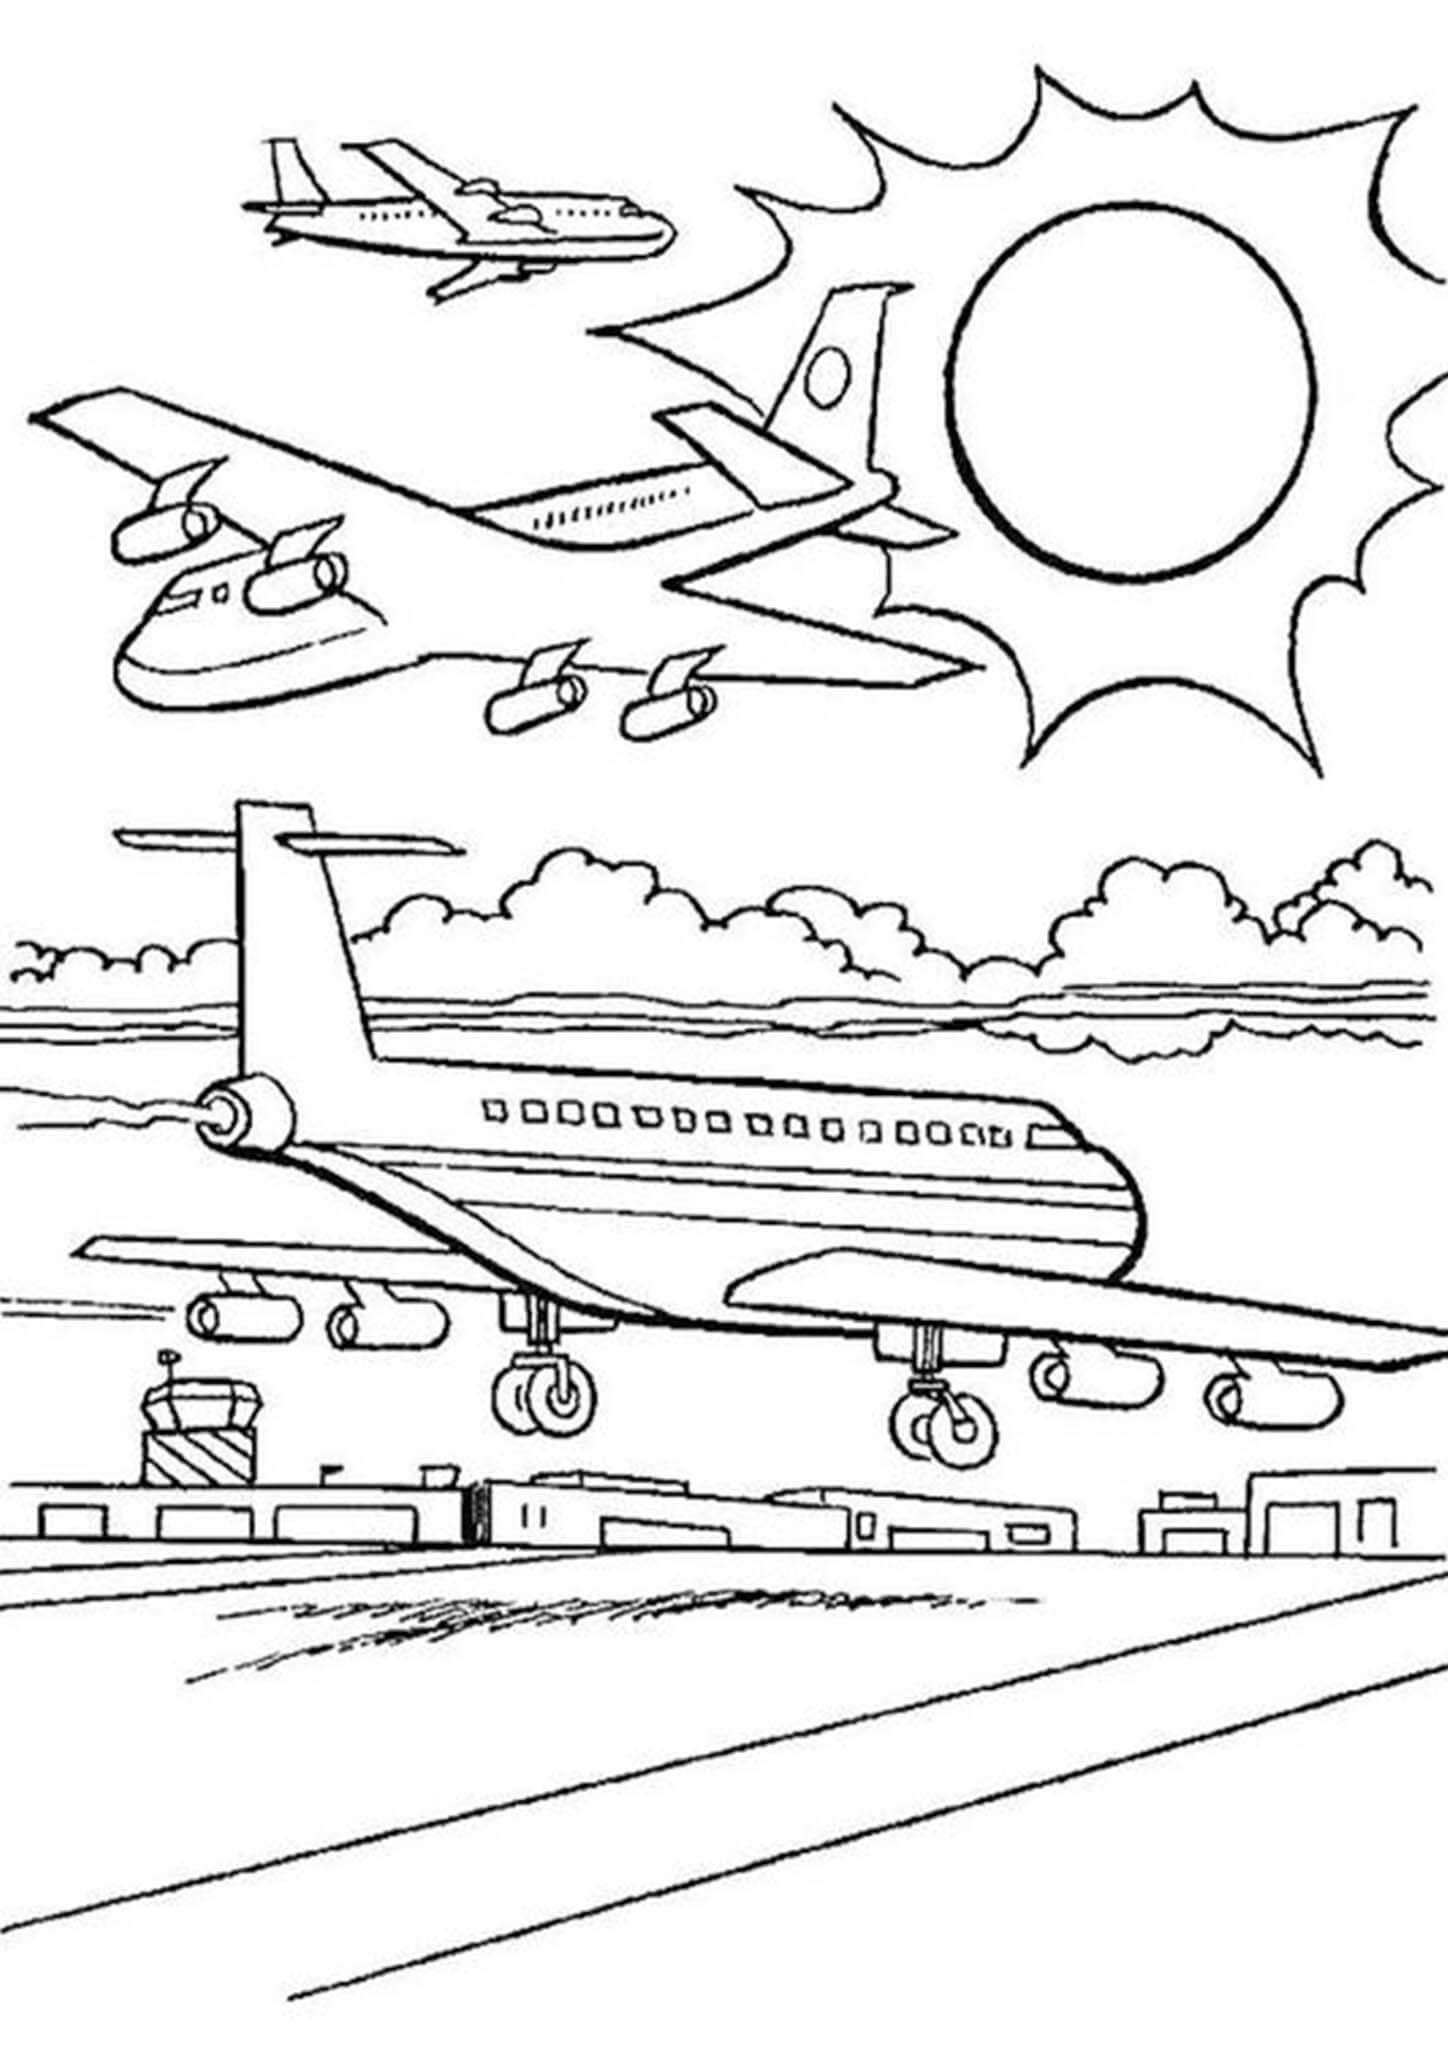 Free Easy To Print Airplane Coloring Pages Airplane Coloring Pages Kids Coloring Books Coloring Pages